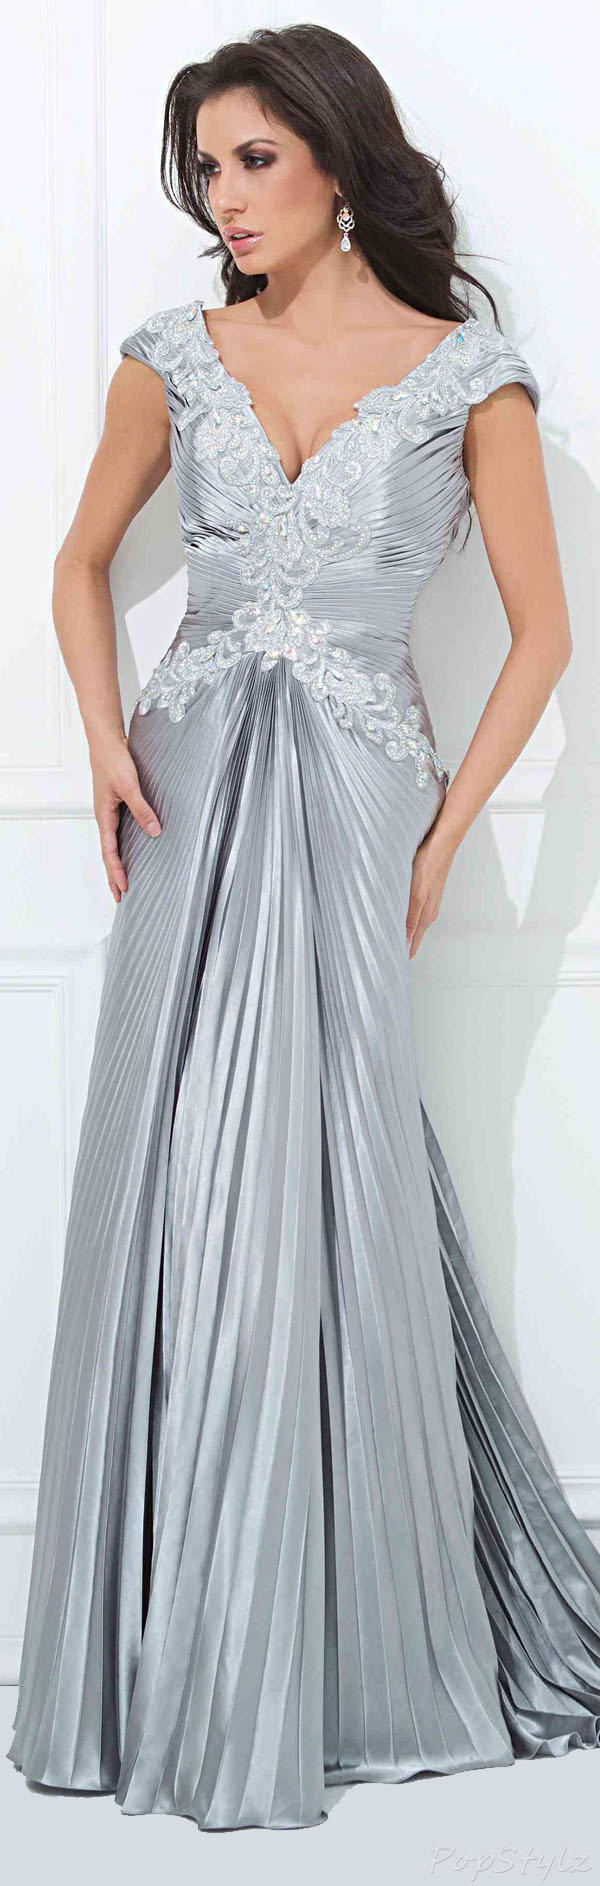 Tony Bowls 11441 Floor Length Long Evening Gown